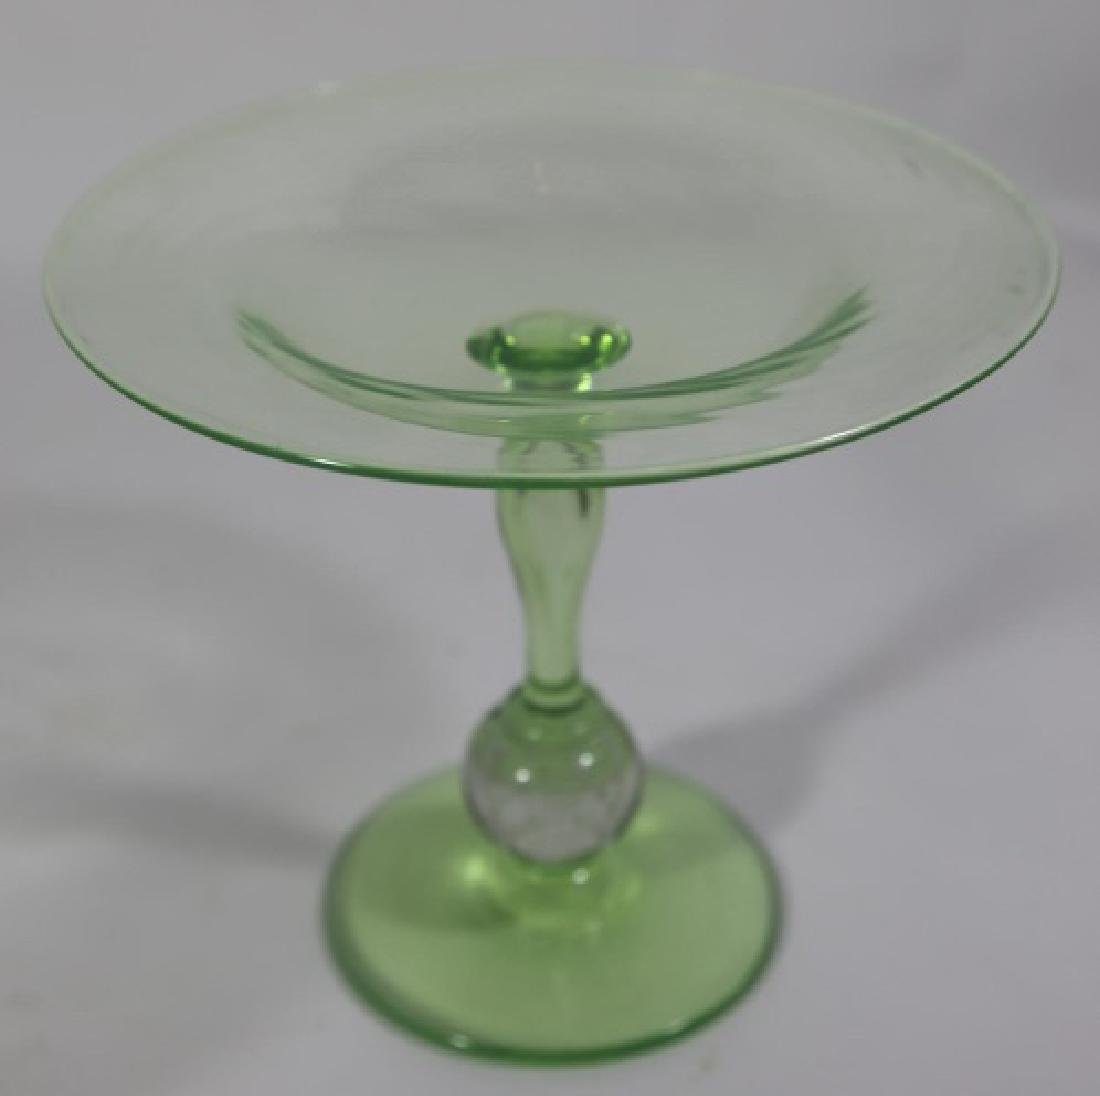 PAIRPOINT ARTGLASS EMERALD CONTROLLED COMPOTE